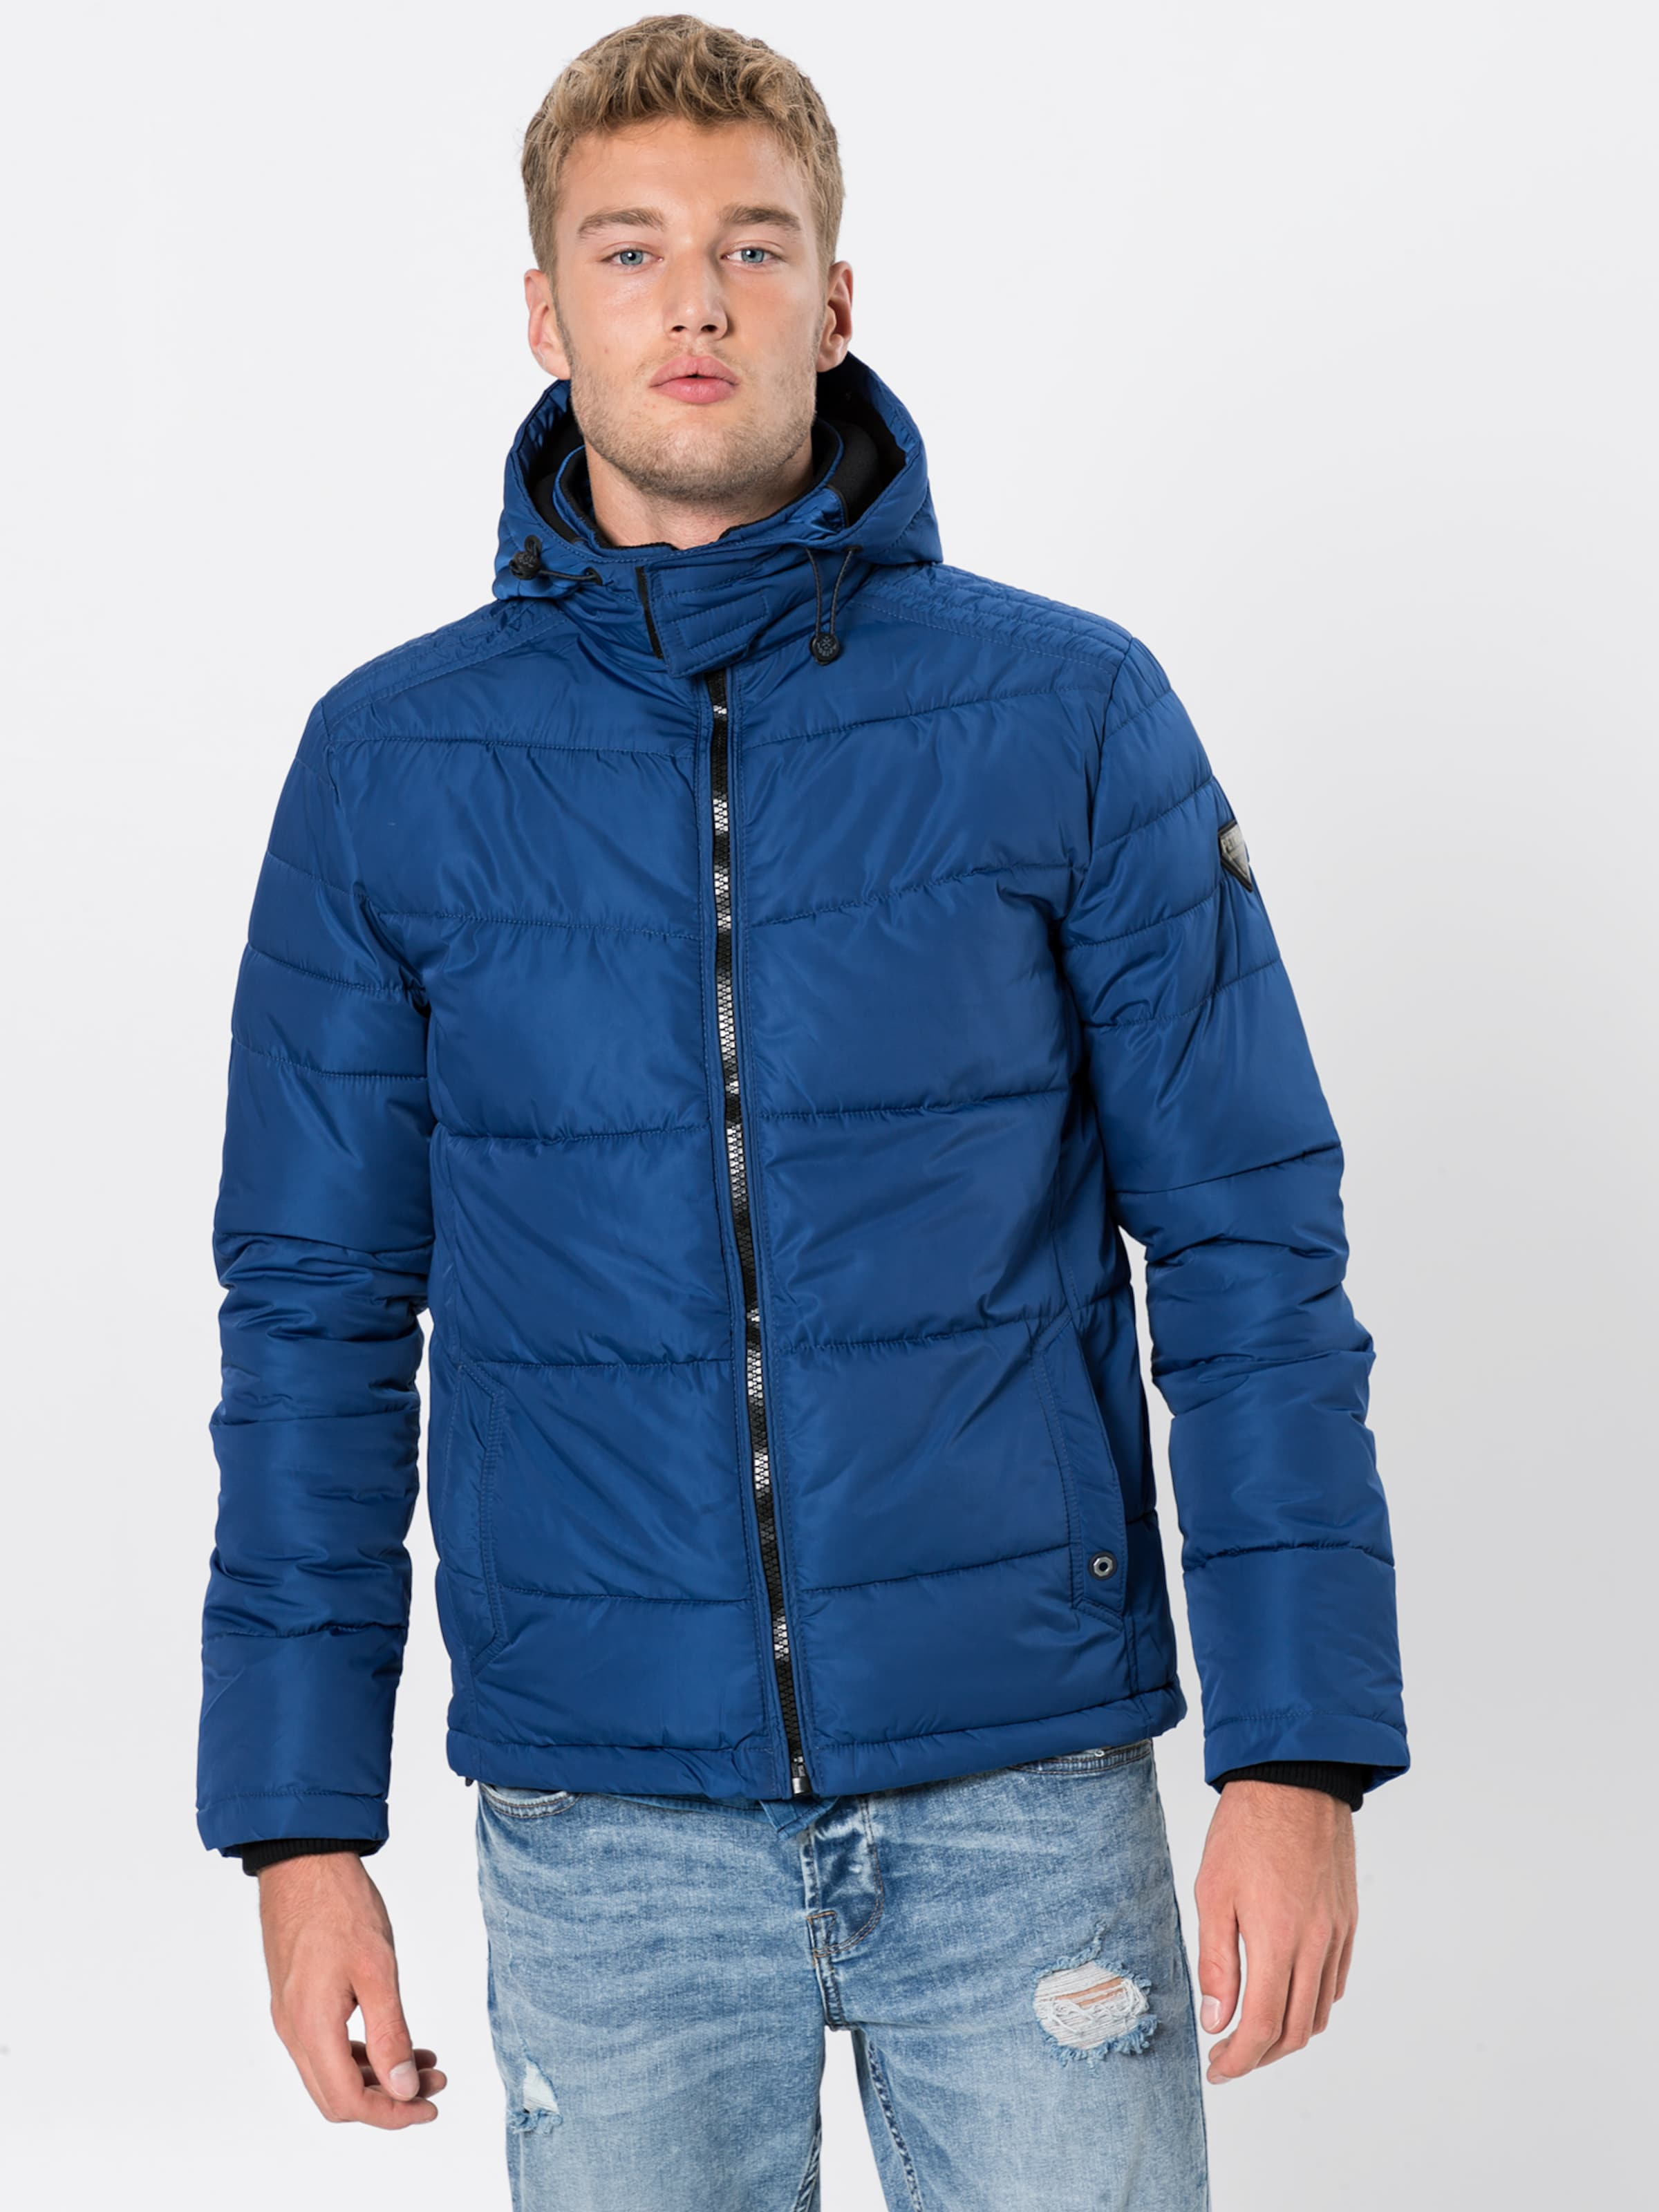 Industries Industries Royalblau Petrol In Jacke Petrol wZulOkXiTP